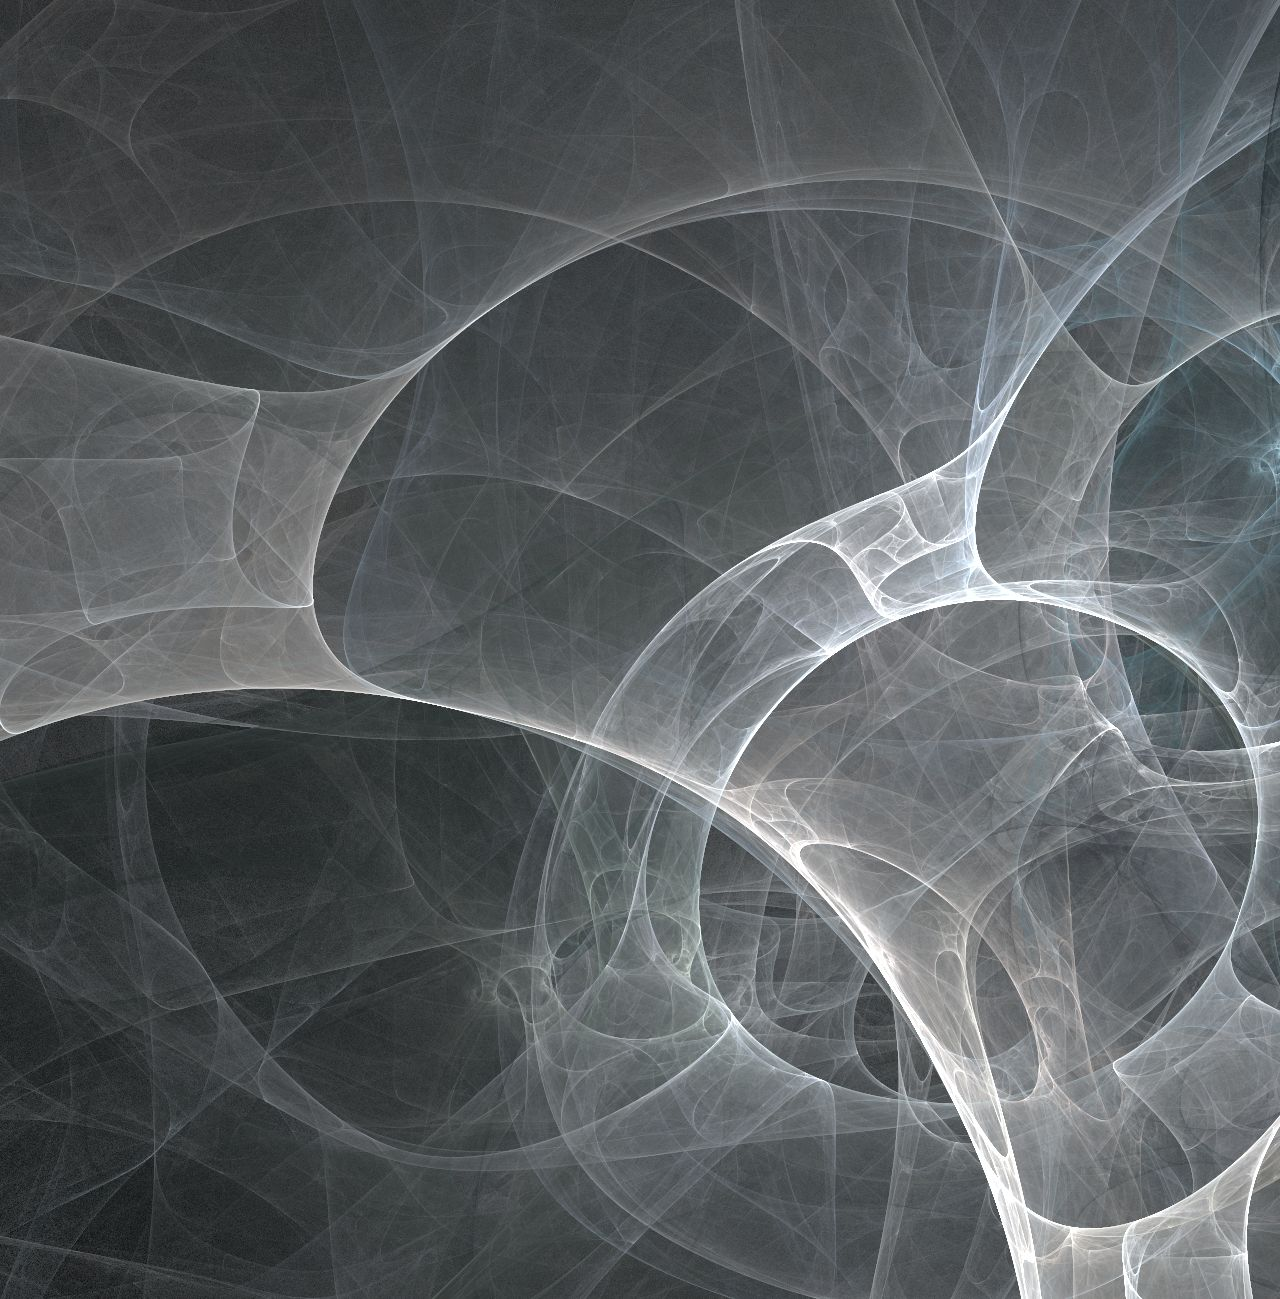 fractal 32 by Silvian25g